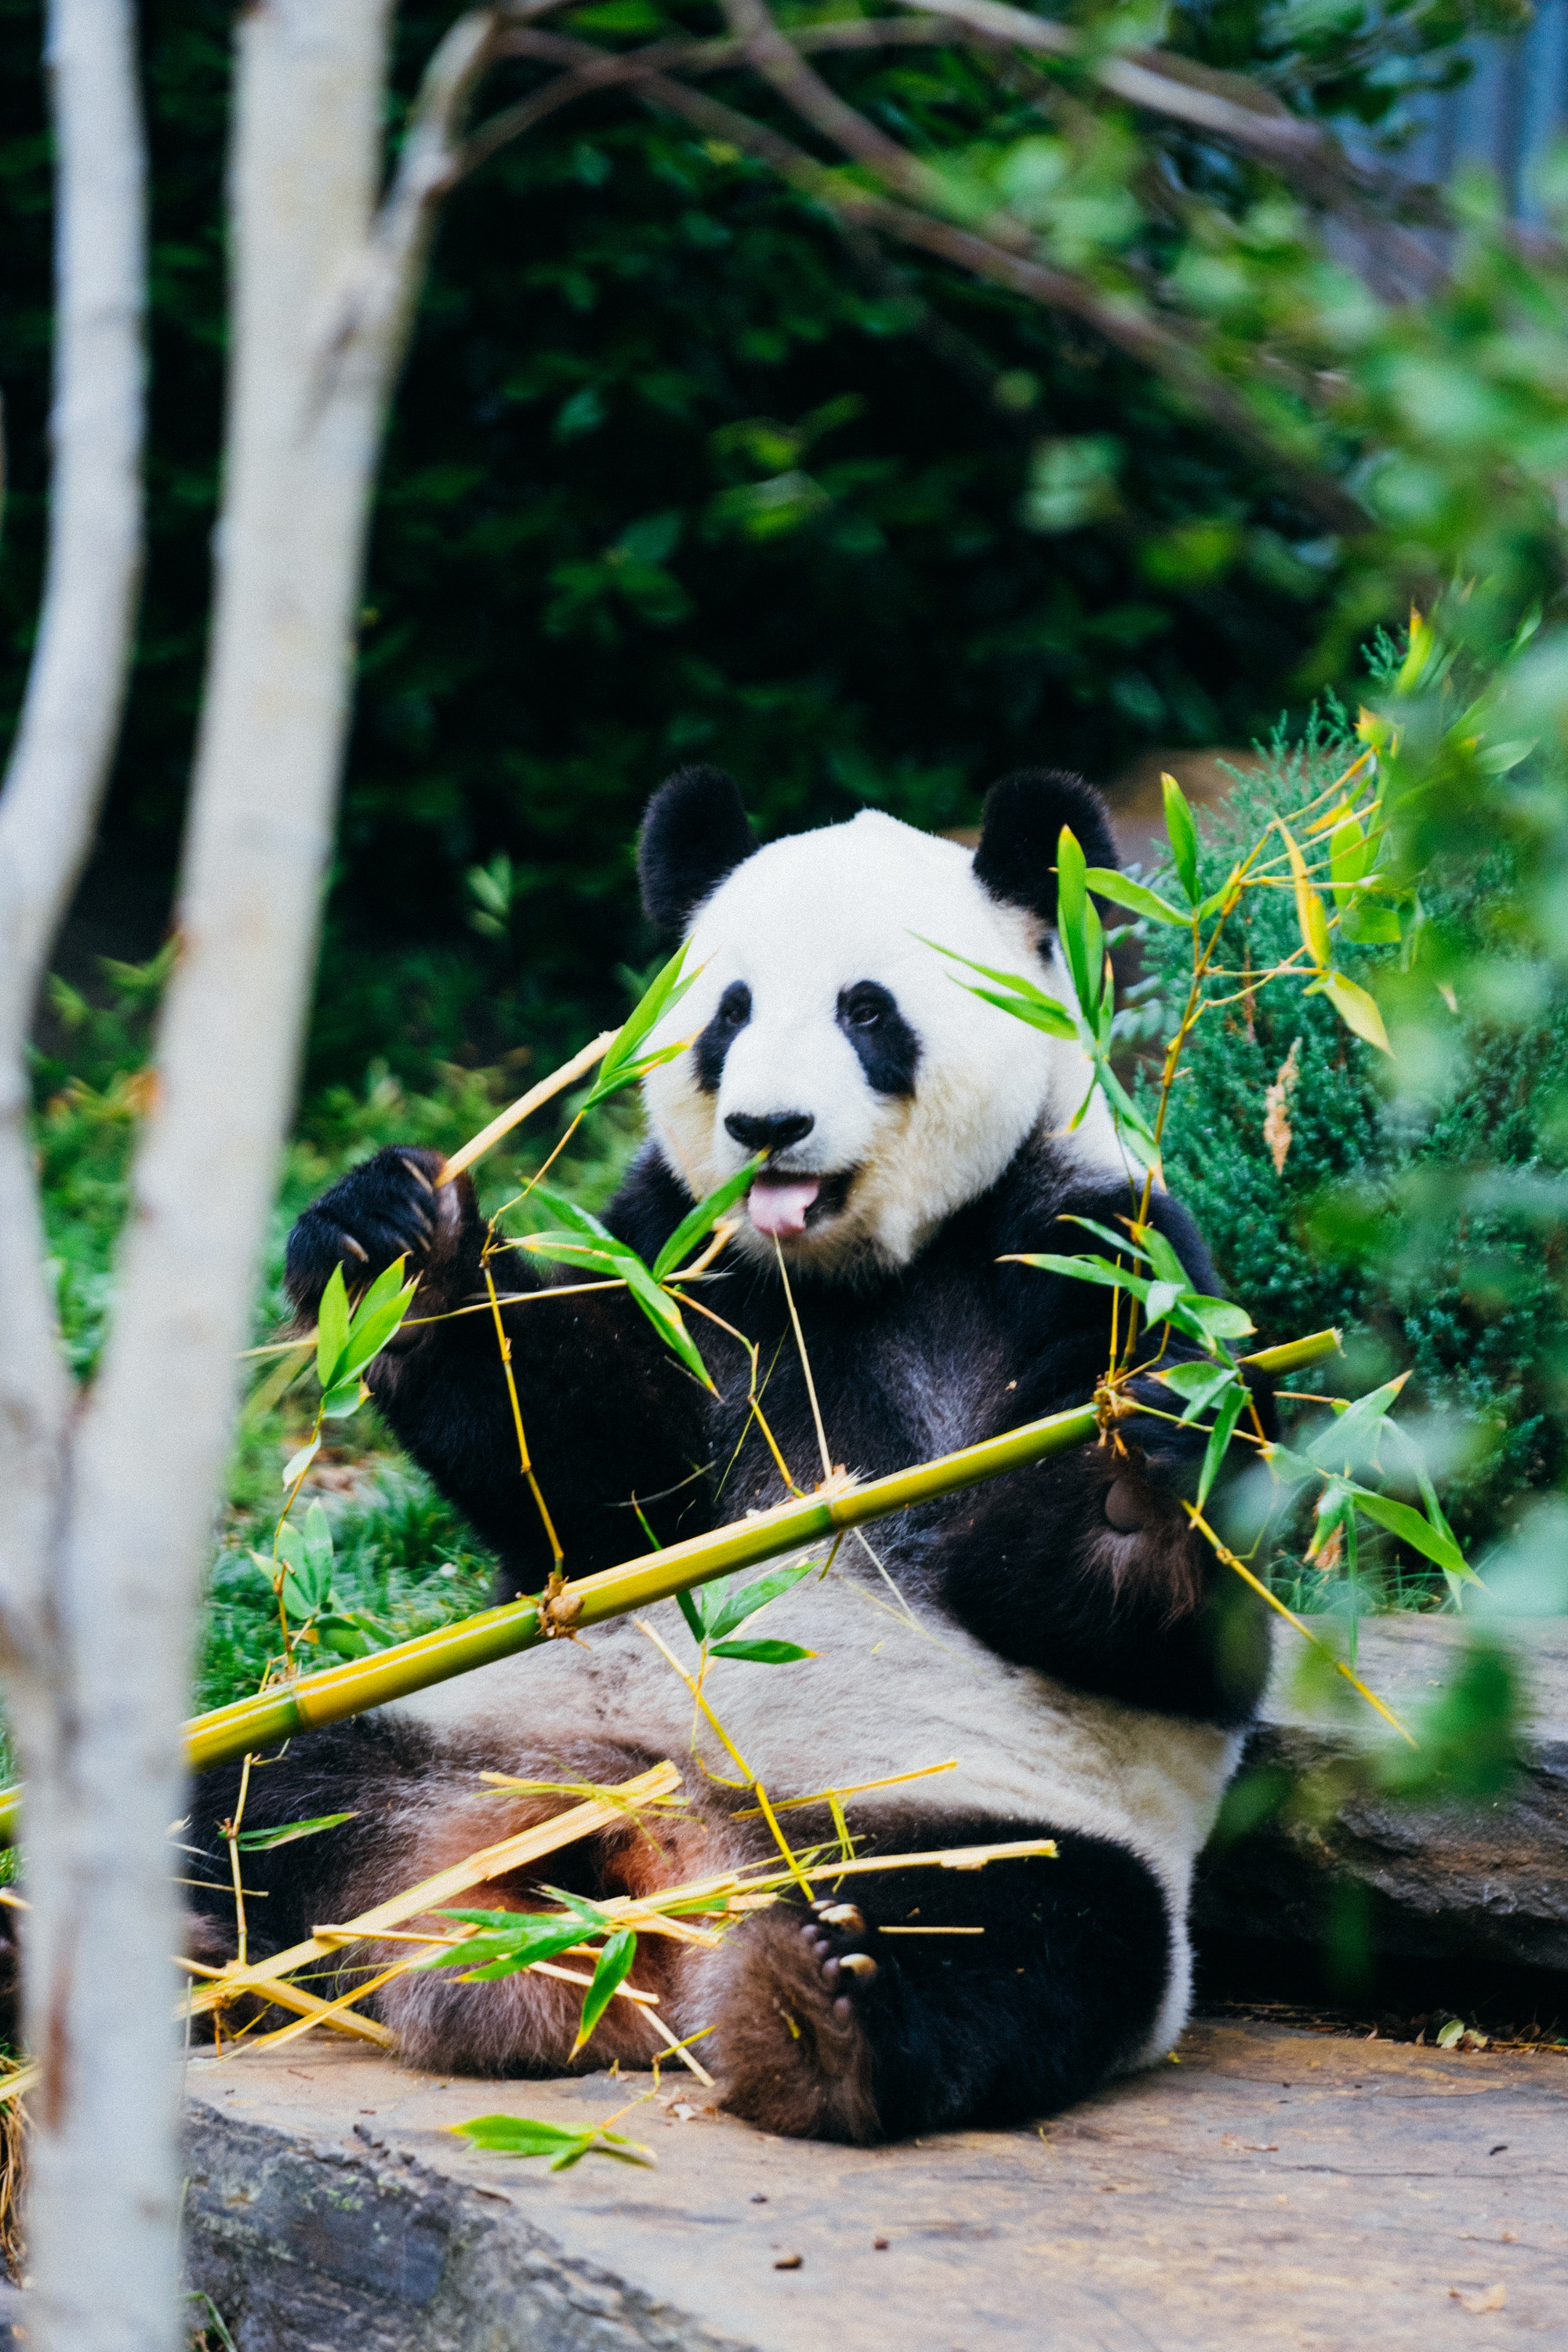 Giant pandas focus on leaves and young shoots that have more protein and less fiber, rather than stalks, which have more fiber and less protein.